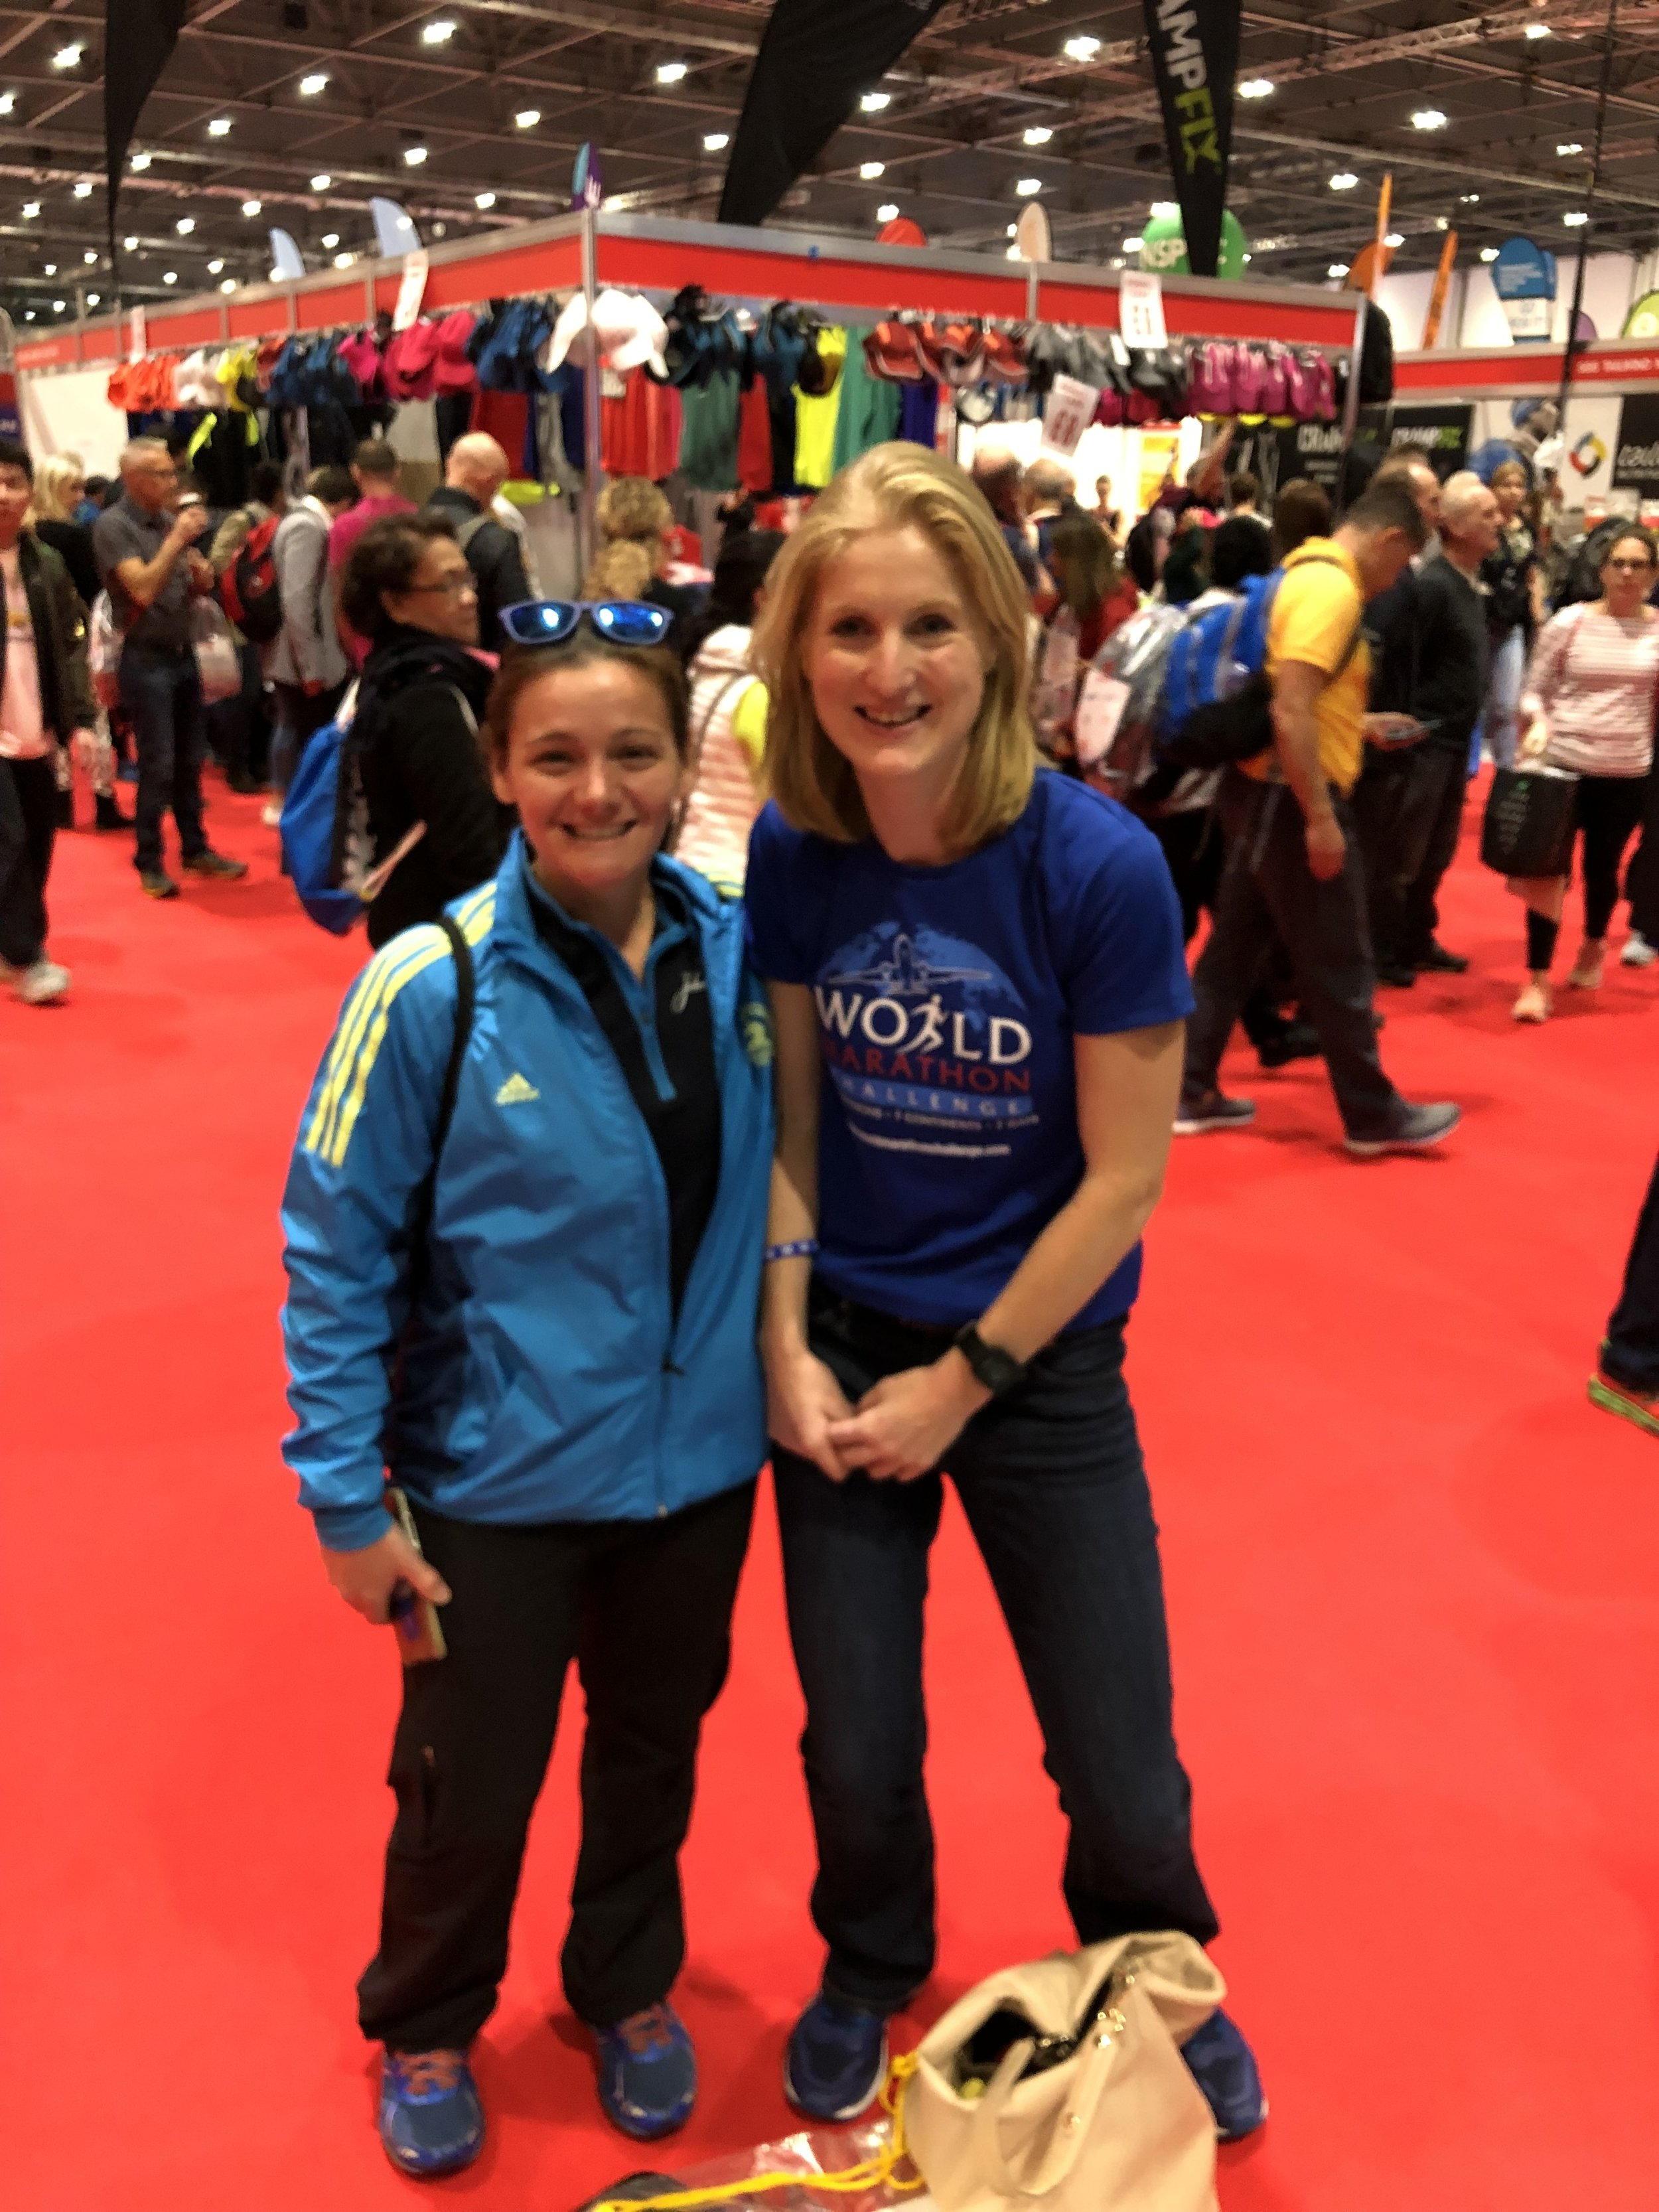 Meeting up with Becca Pizzi……proof that World Marathon Challenge World Record Holders come in all sizes.